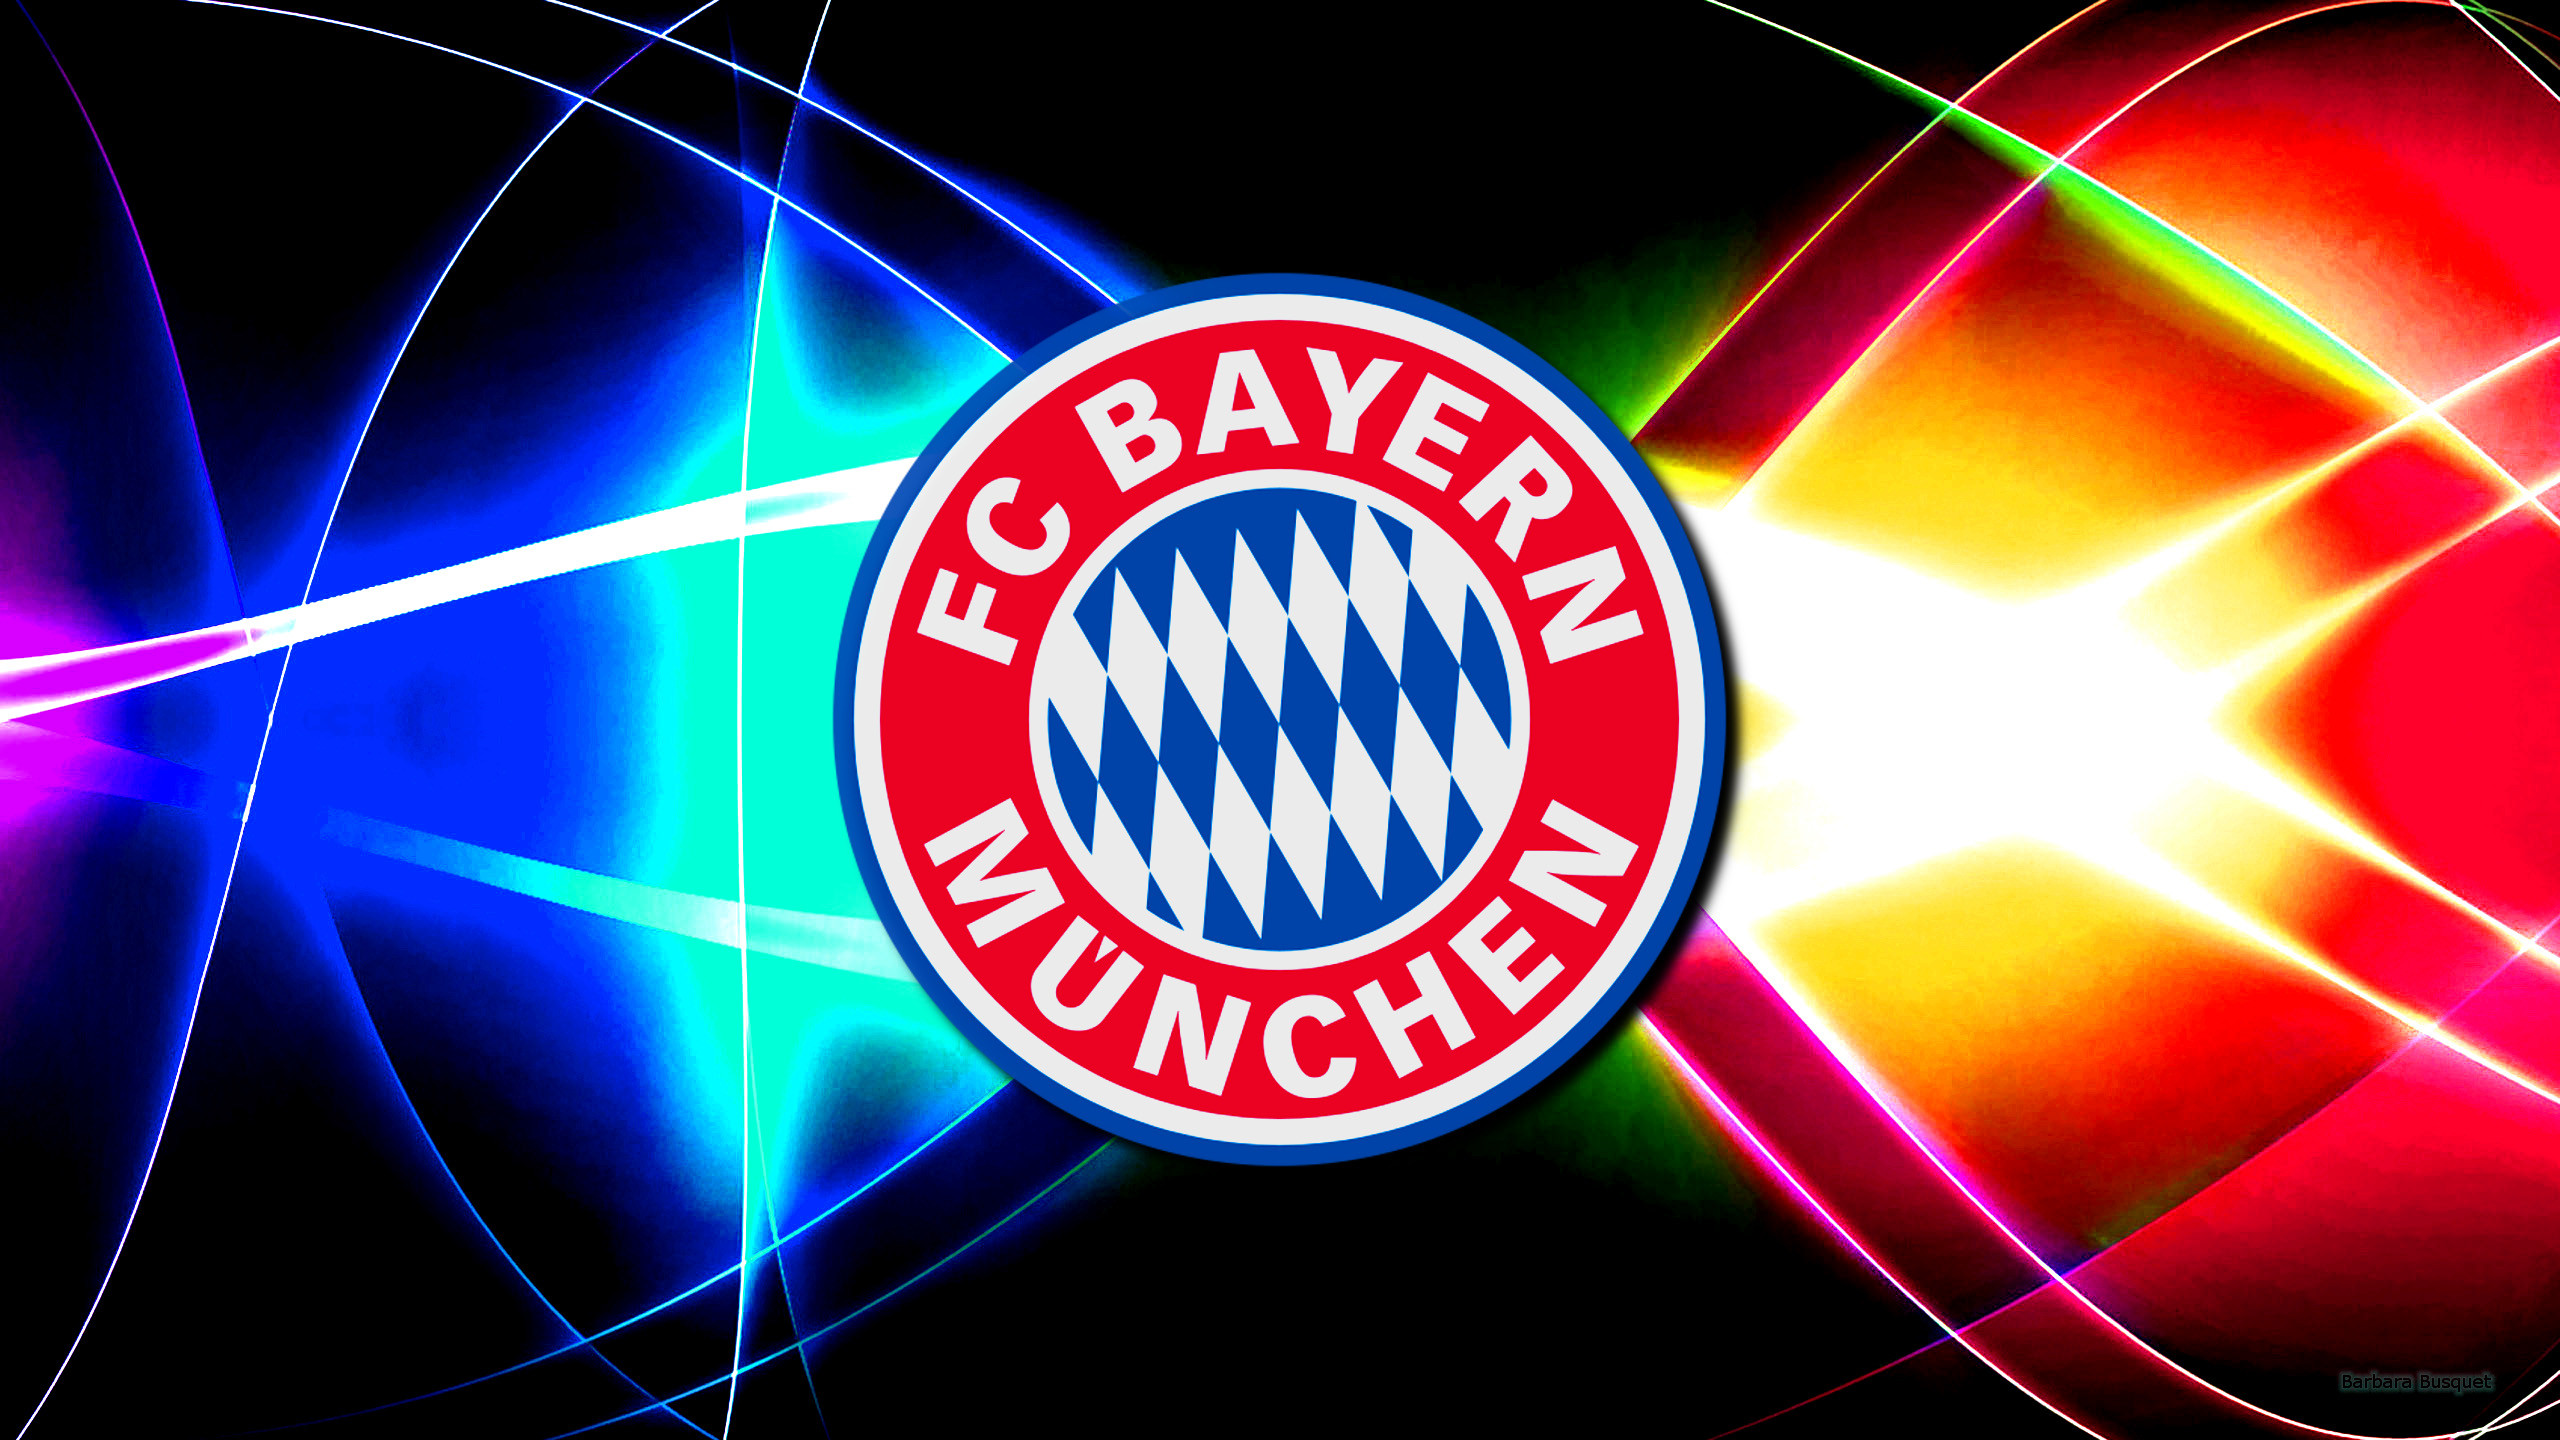 Fc bayern munchen wallpapers barbaras hd wallpapers colorful bayern munchen football club wallpaper voltagebd